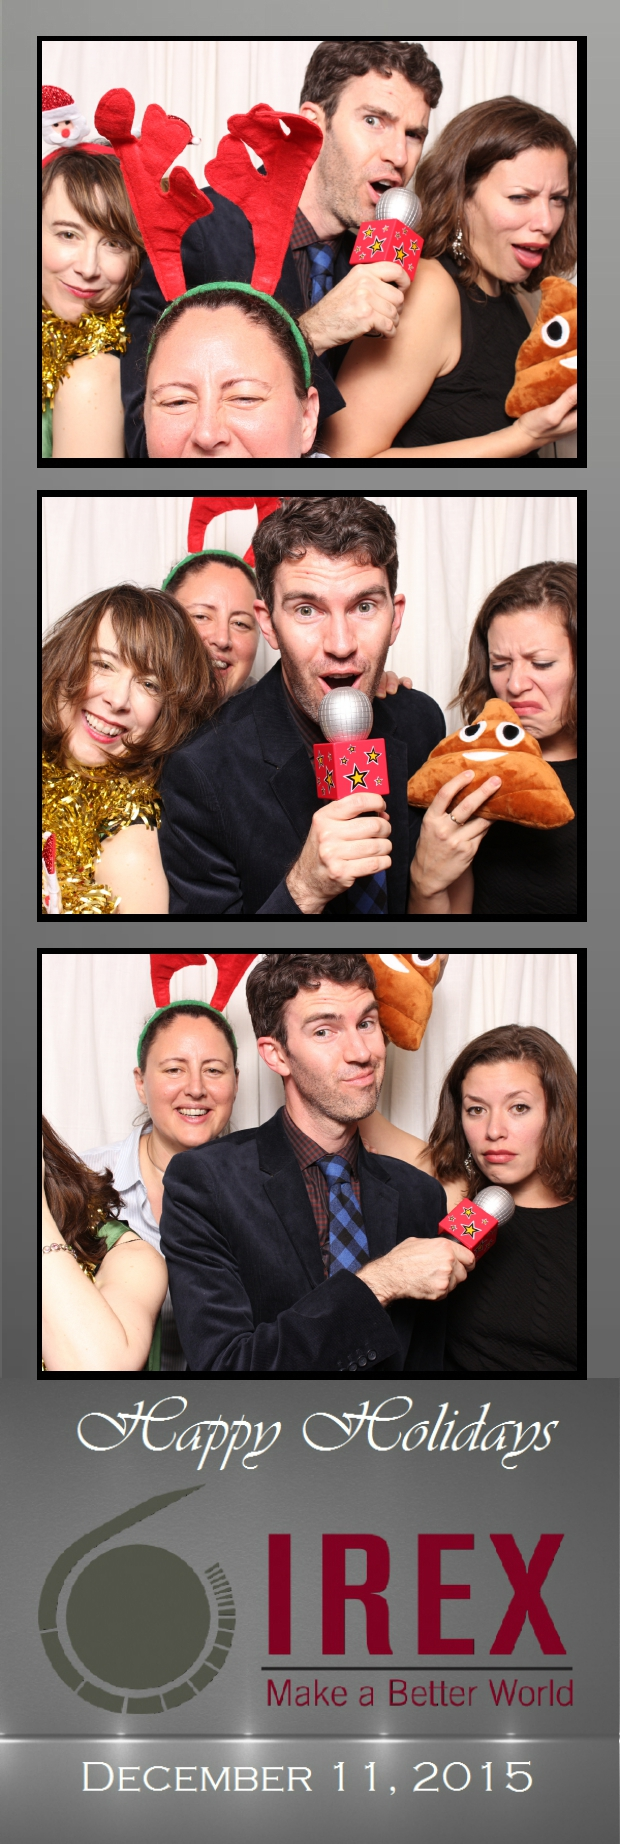 Guest House Events Photo Booth Strips IREX (47).jpg